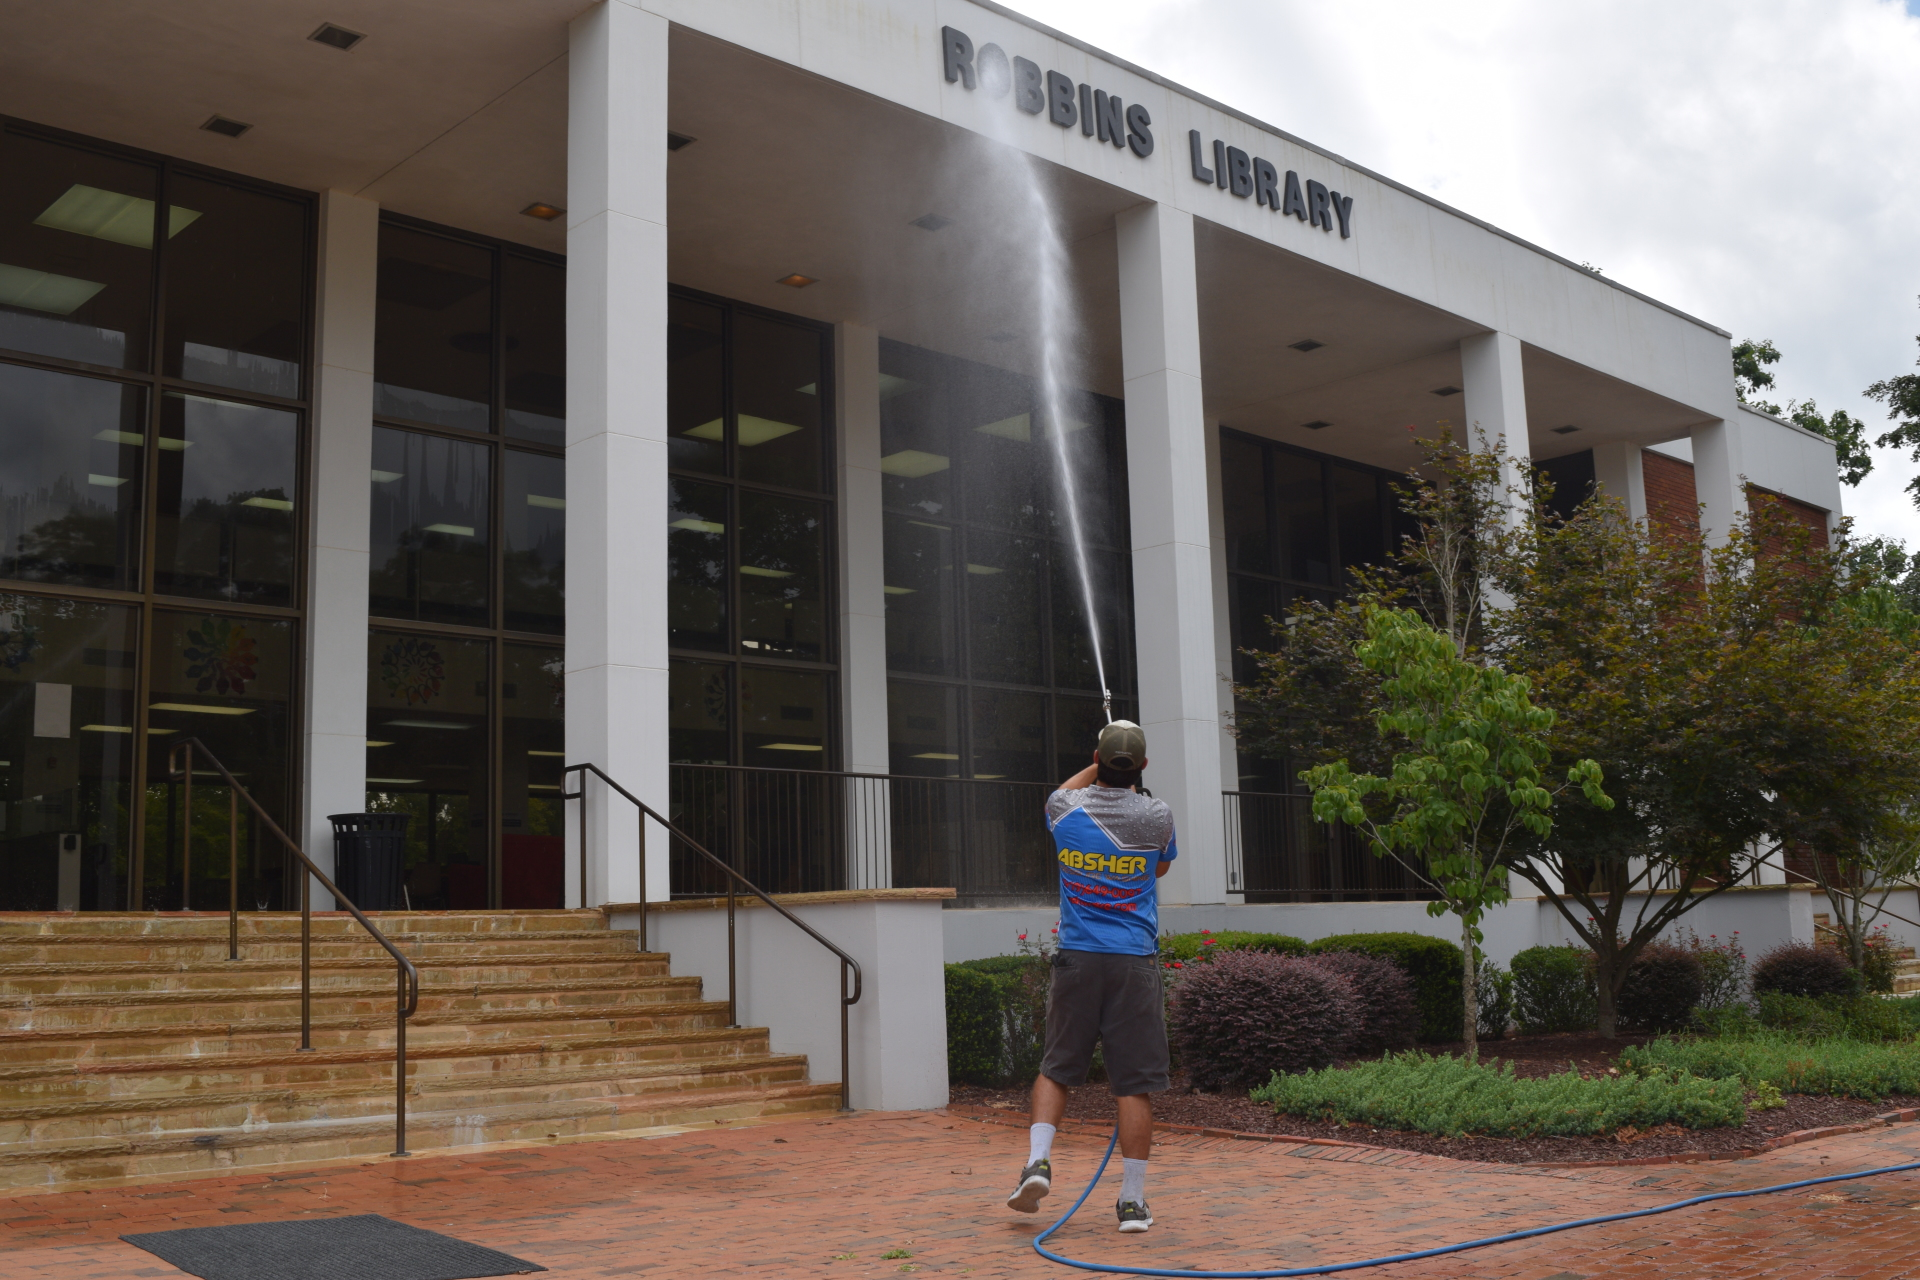 Absher Pressure Washing provides commercial power washing service in Raleigh and the surrounding areas.